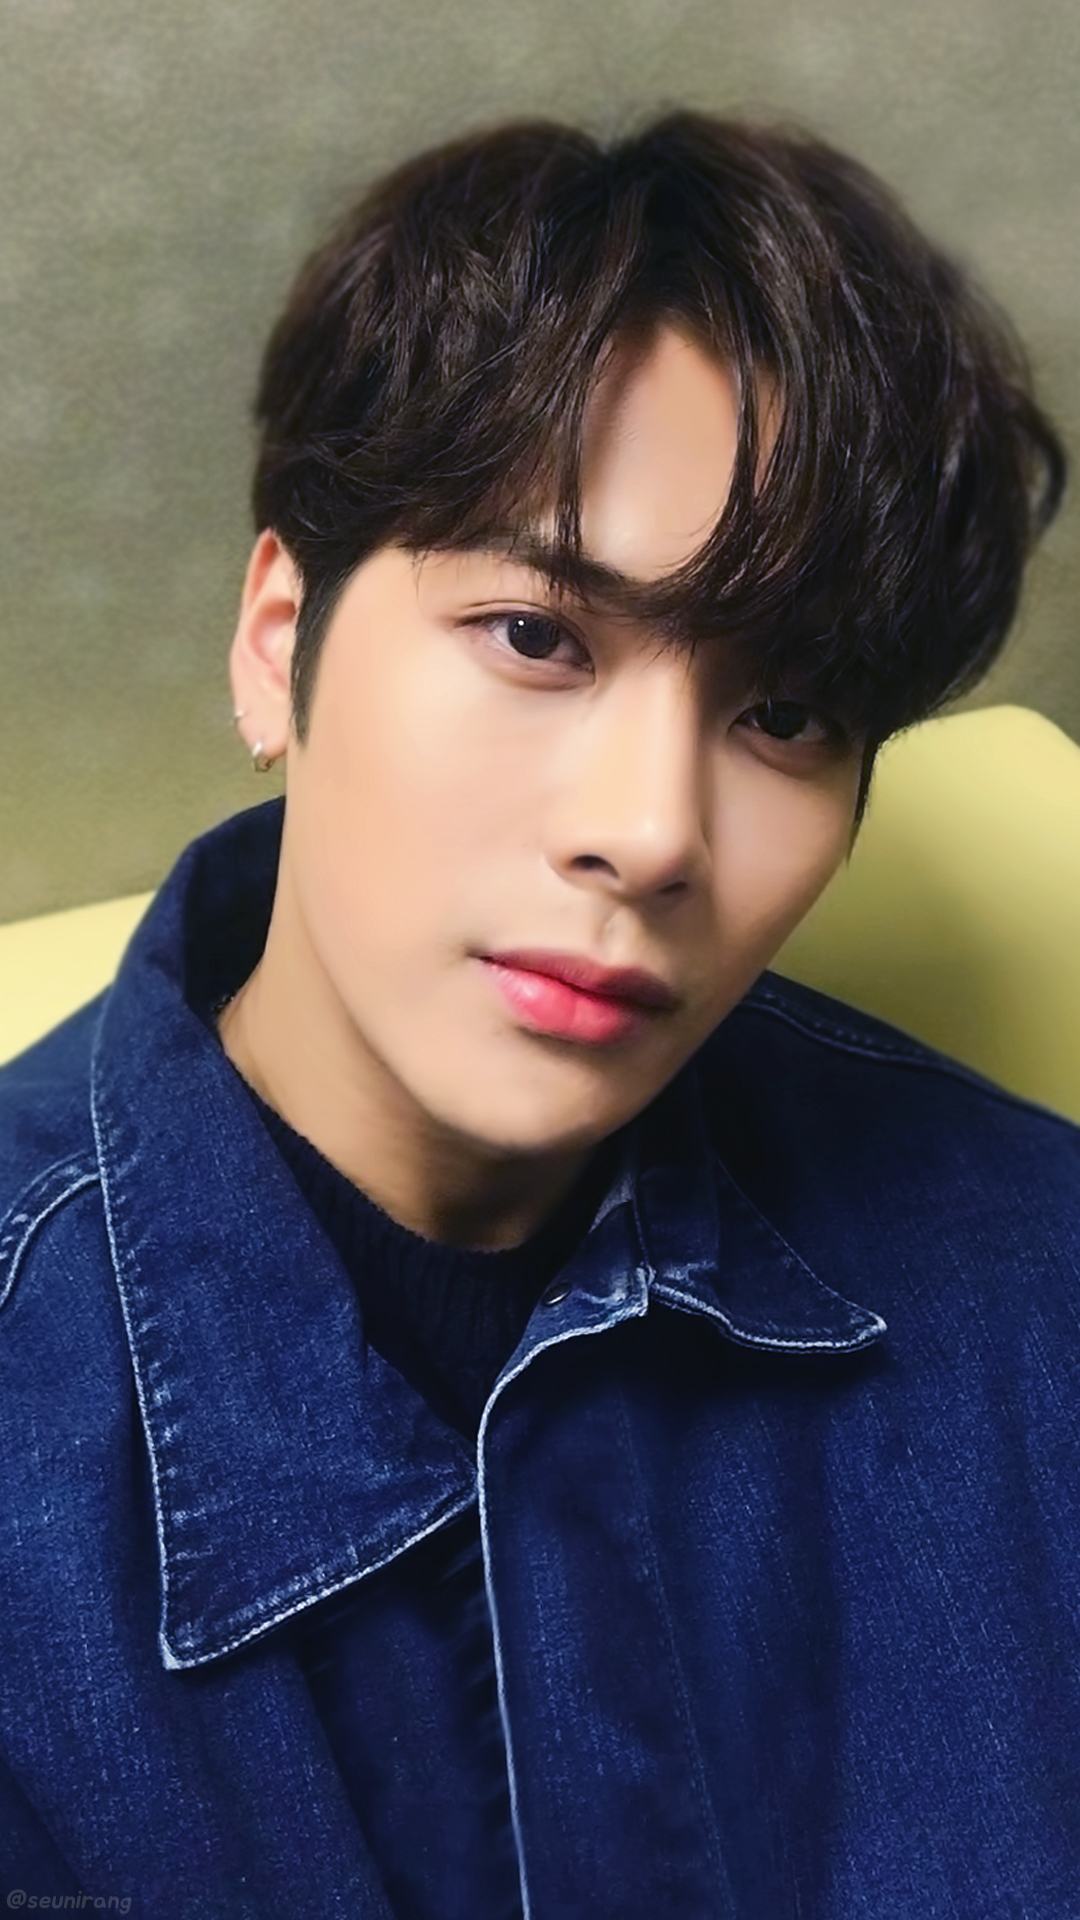 Bts In Ama >> TRENDING) GOT7's Jackson To Make A Special Appearance On 2017 AMA - Koreaboo